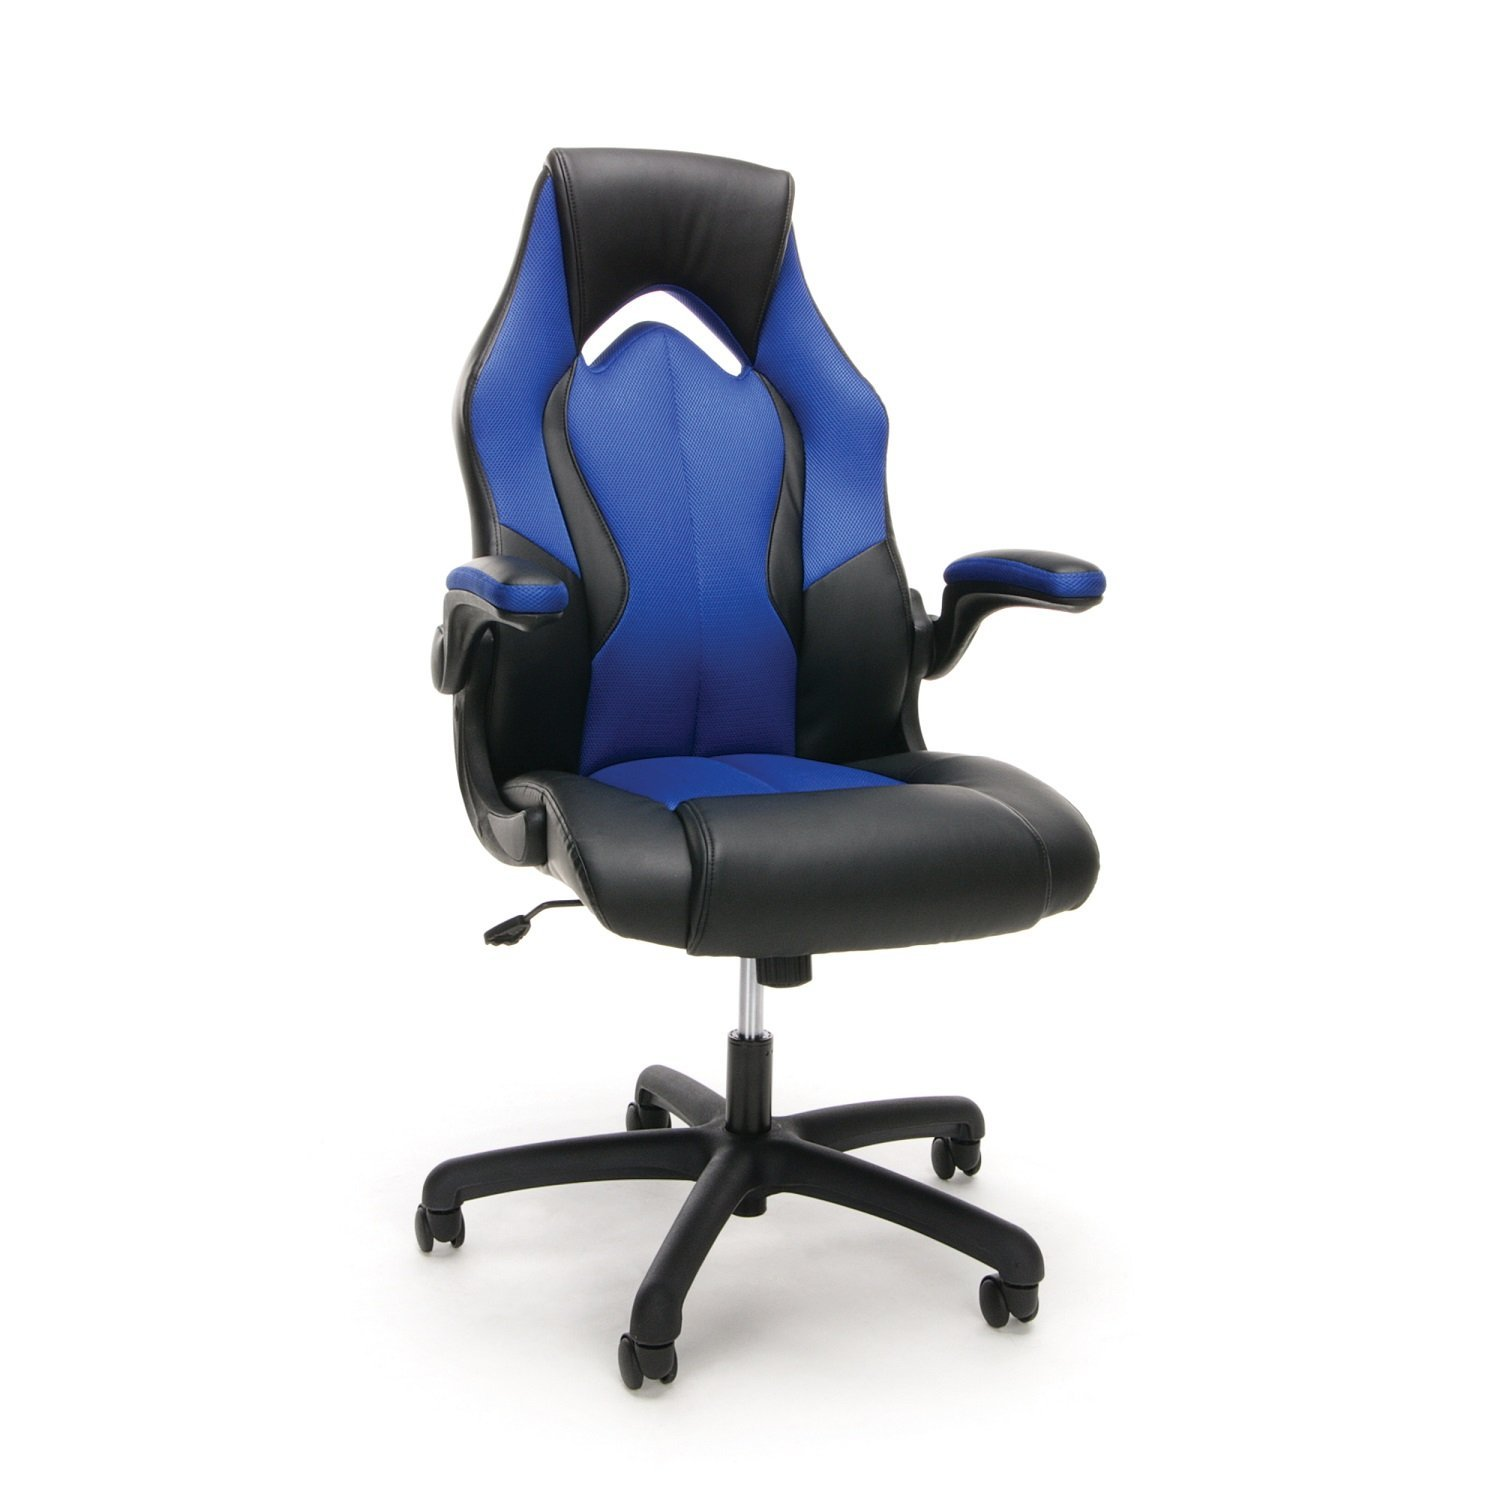 Top 10 Best Cheap Gaming Chairs Under 150 In 2019 Topreviewproducts